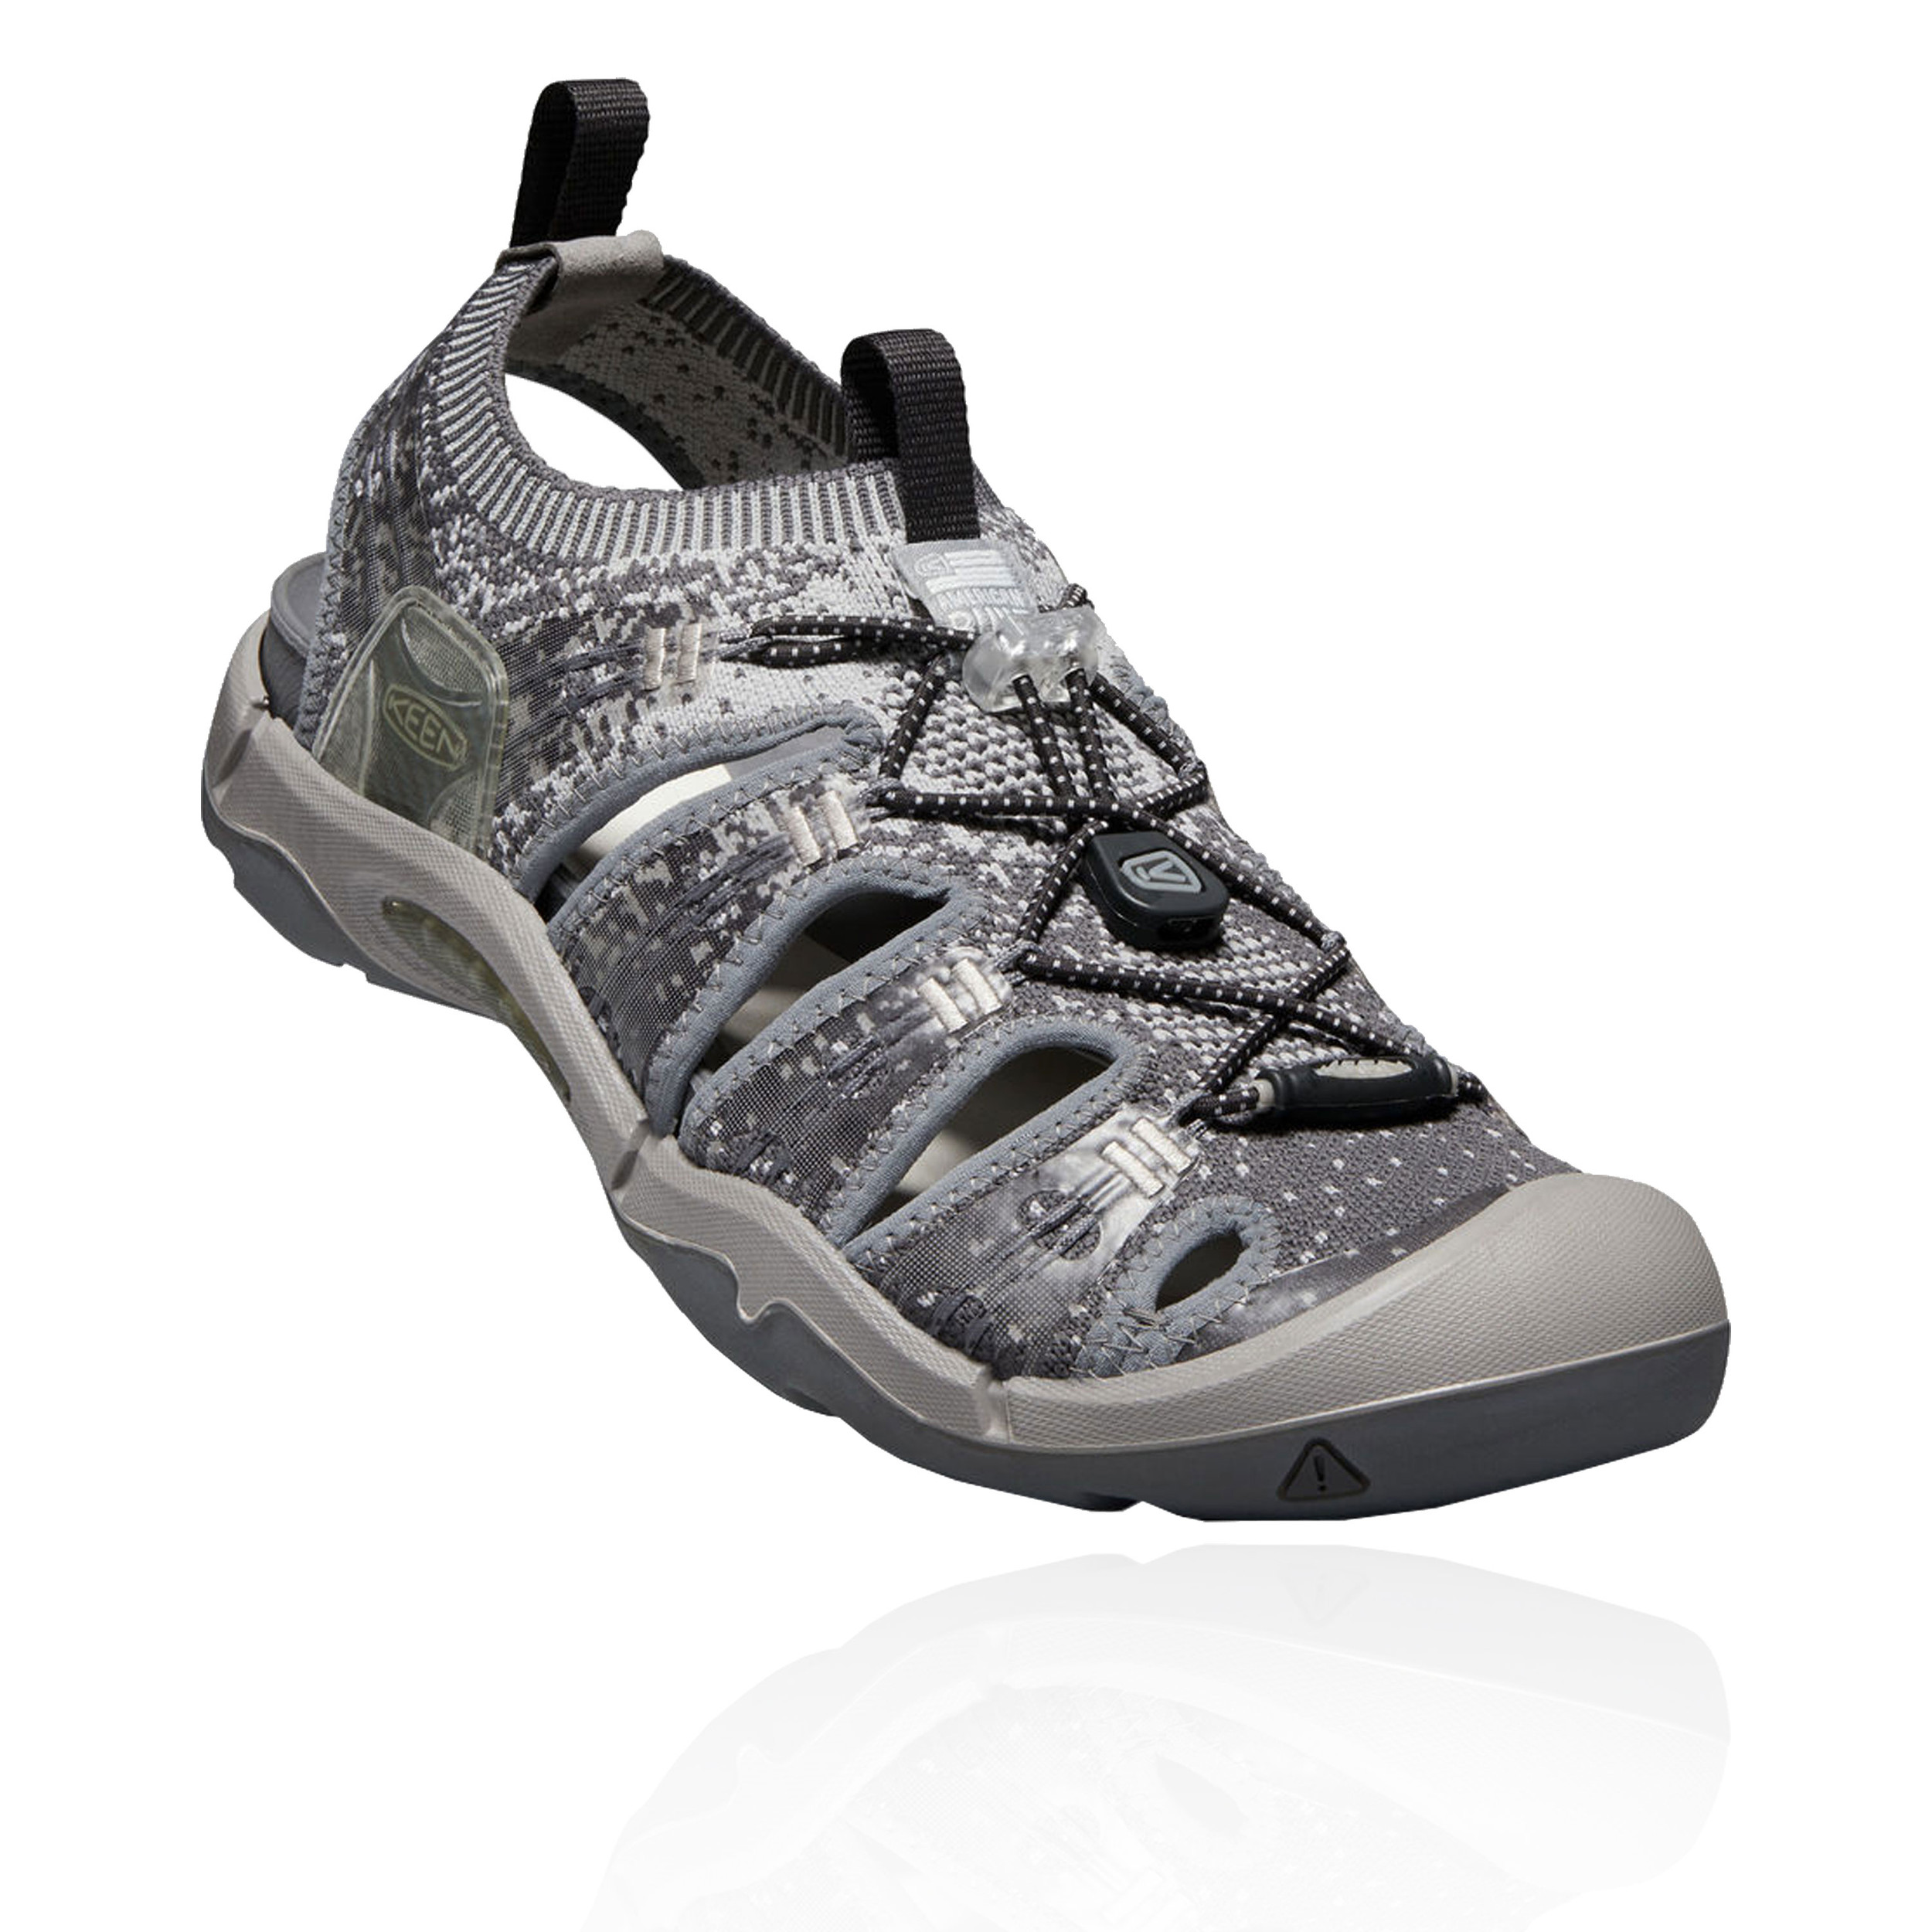 a3ff61c5a894 Keen Mens Evofit One Walking Shoes Sandals Grey Sports Outdoors ...